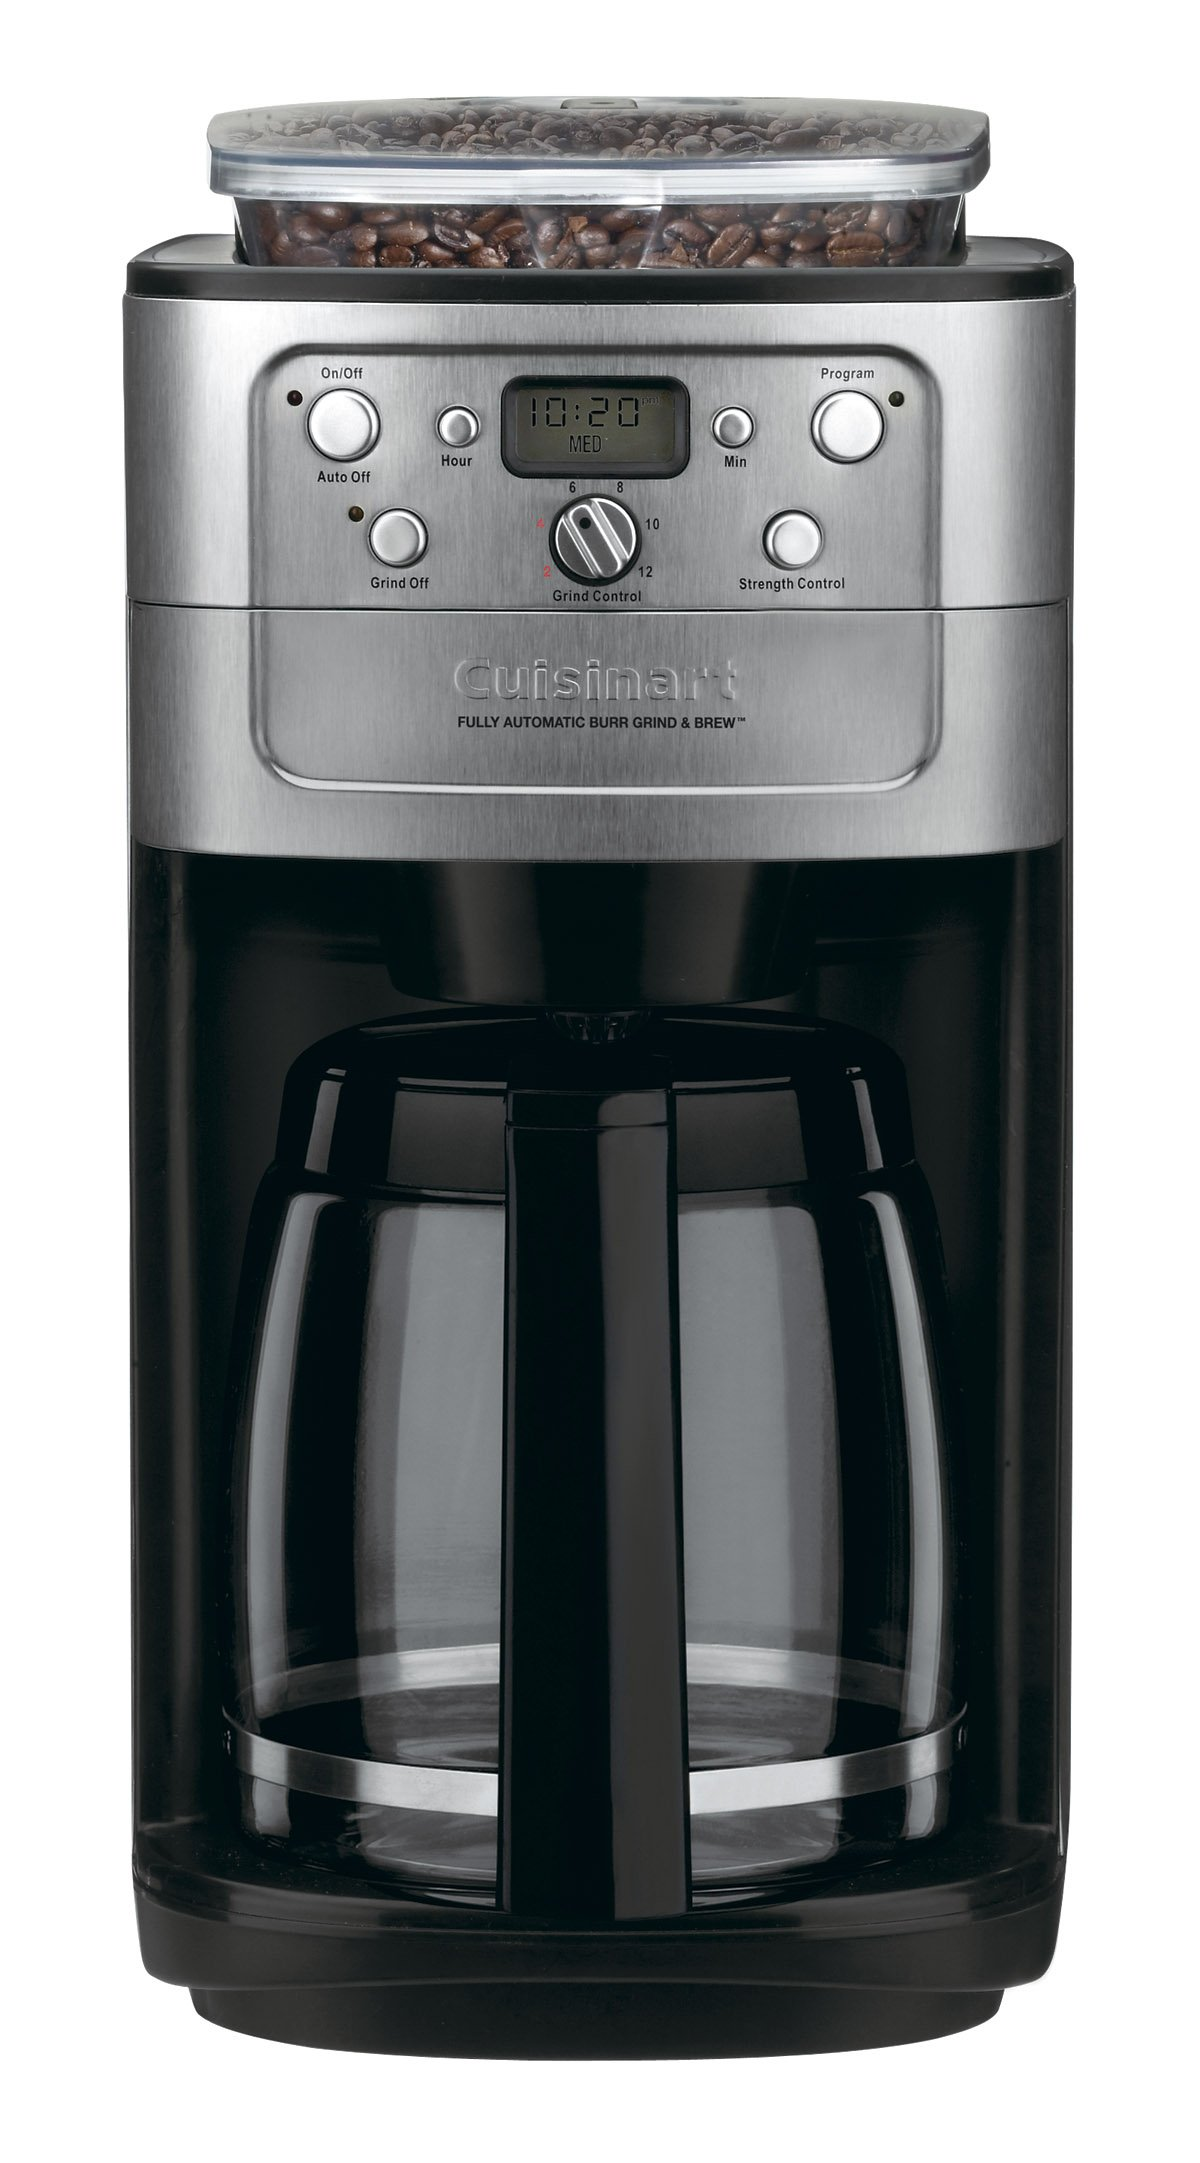 Conair Cuisinart Grind & Brew DGB-700BC 12 Cup Coffeemaker (Black/Brushed Chrome) by Cuisinart